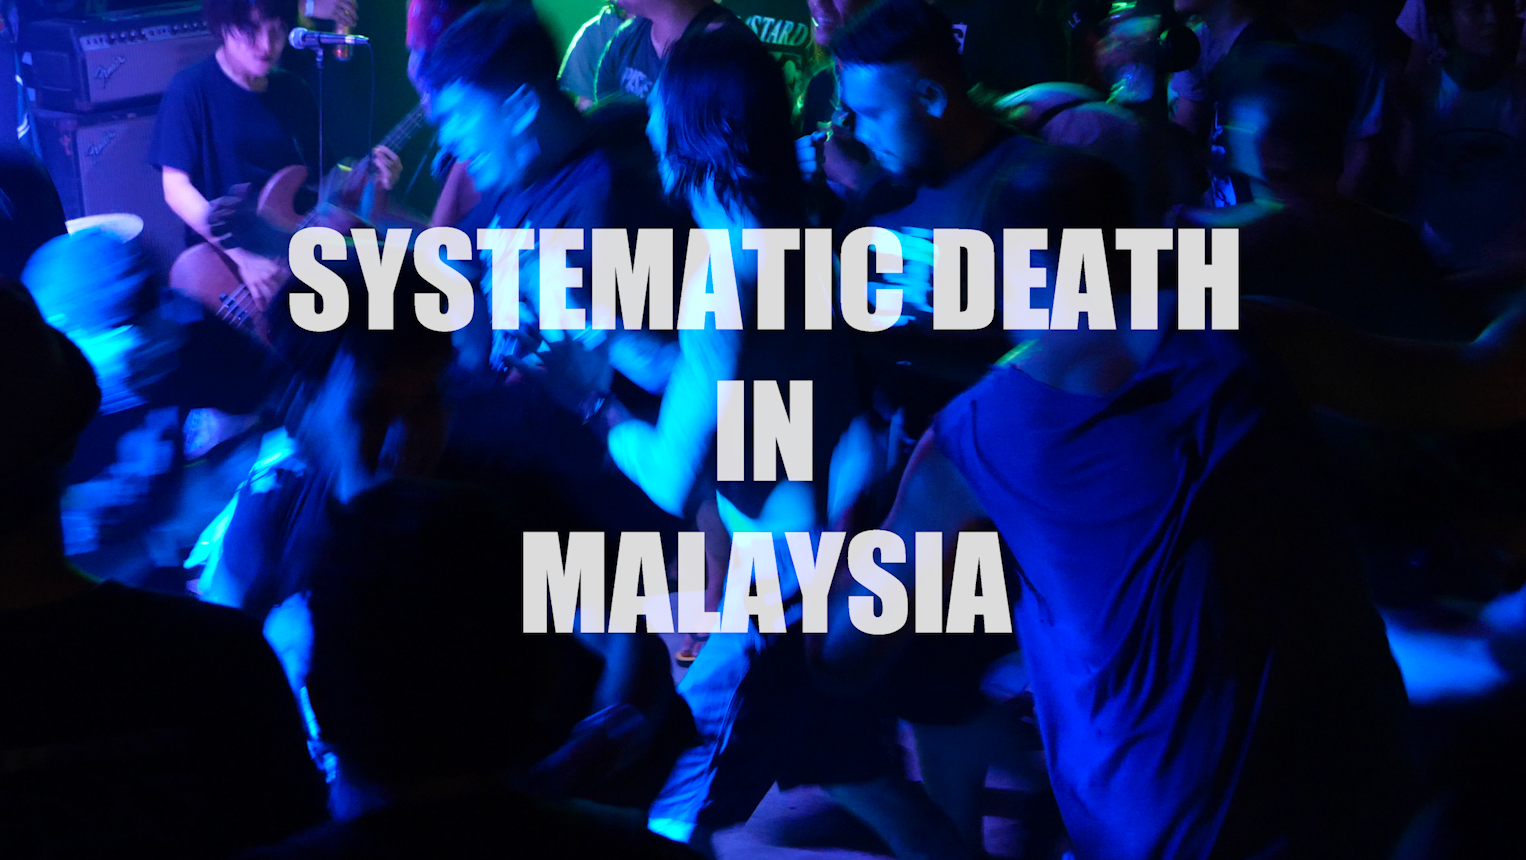 SYSTEMATIC DEATH IN MALAYSIA